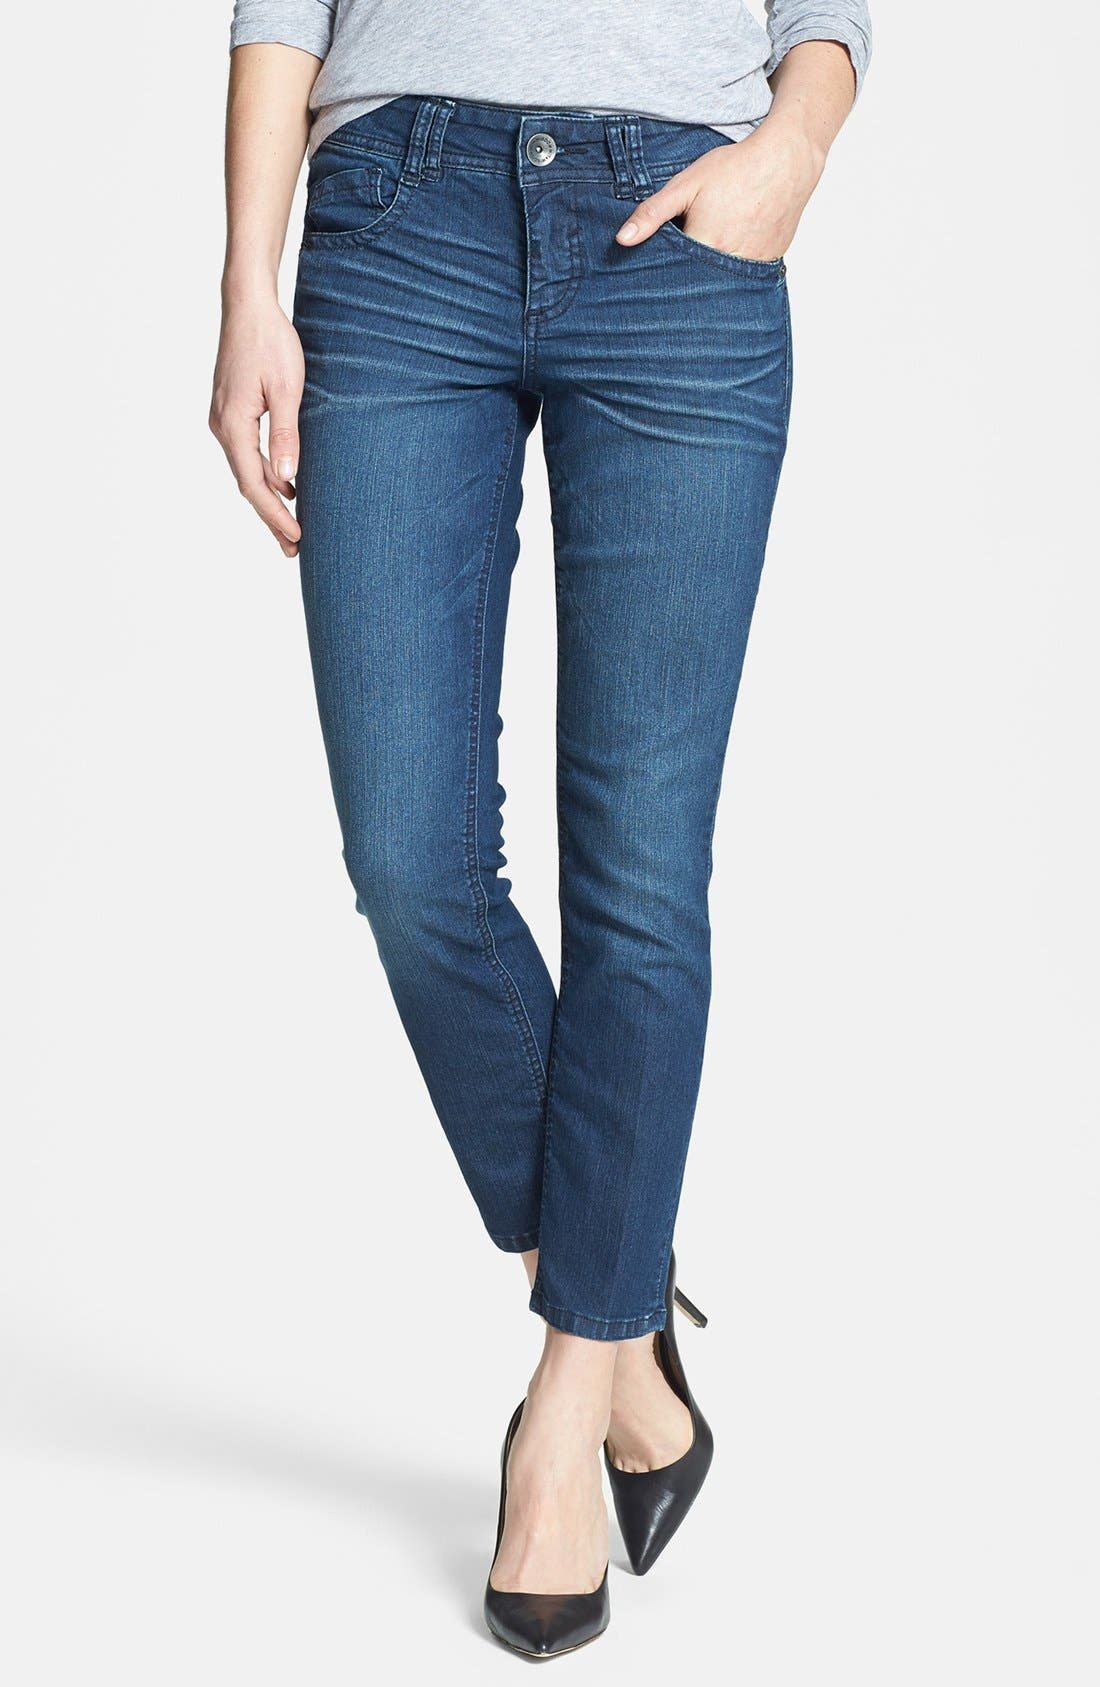 Main Image - Wit & Wisdom Stretch Ankle Skinny Jeans (Tencel Indigo) (Nordstrom Exclusive)